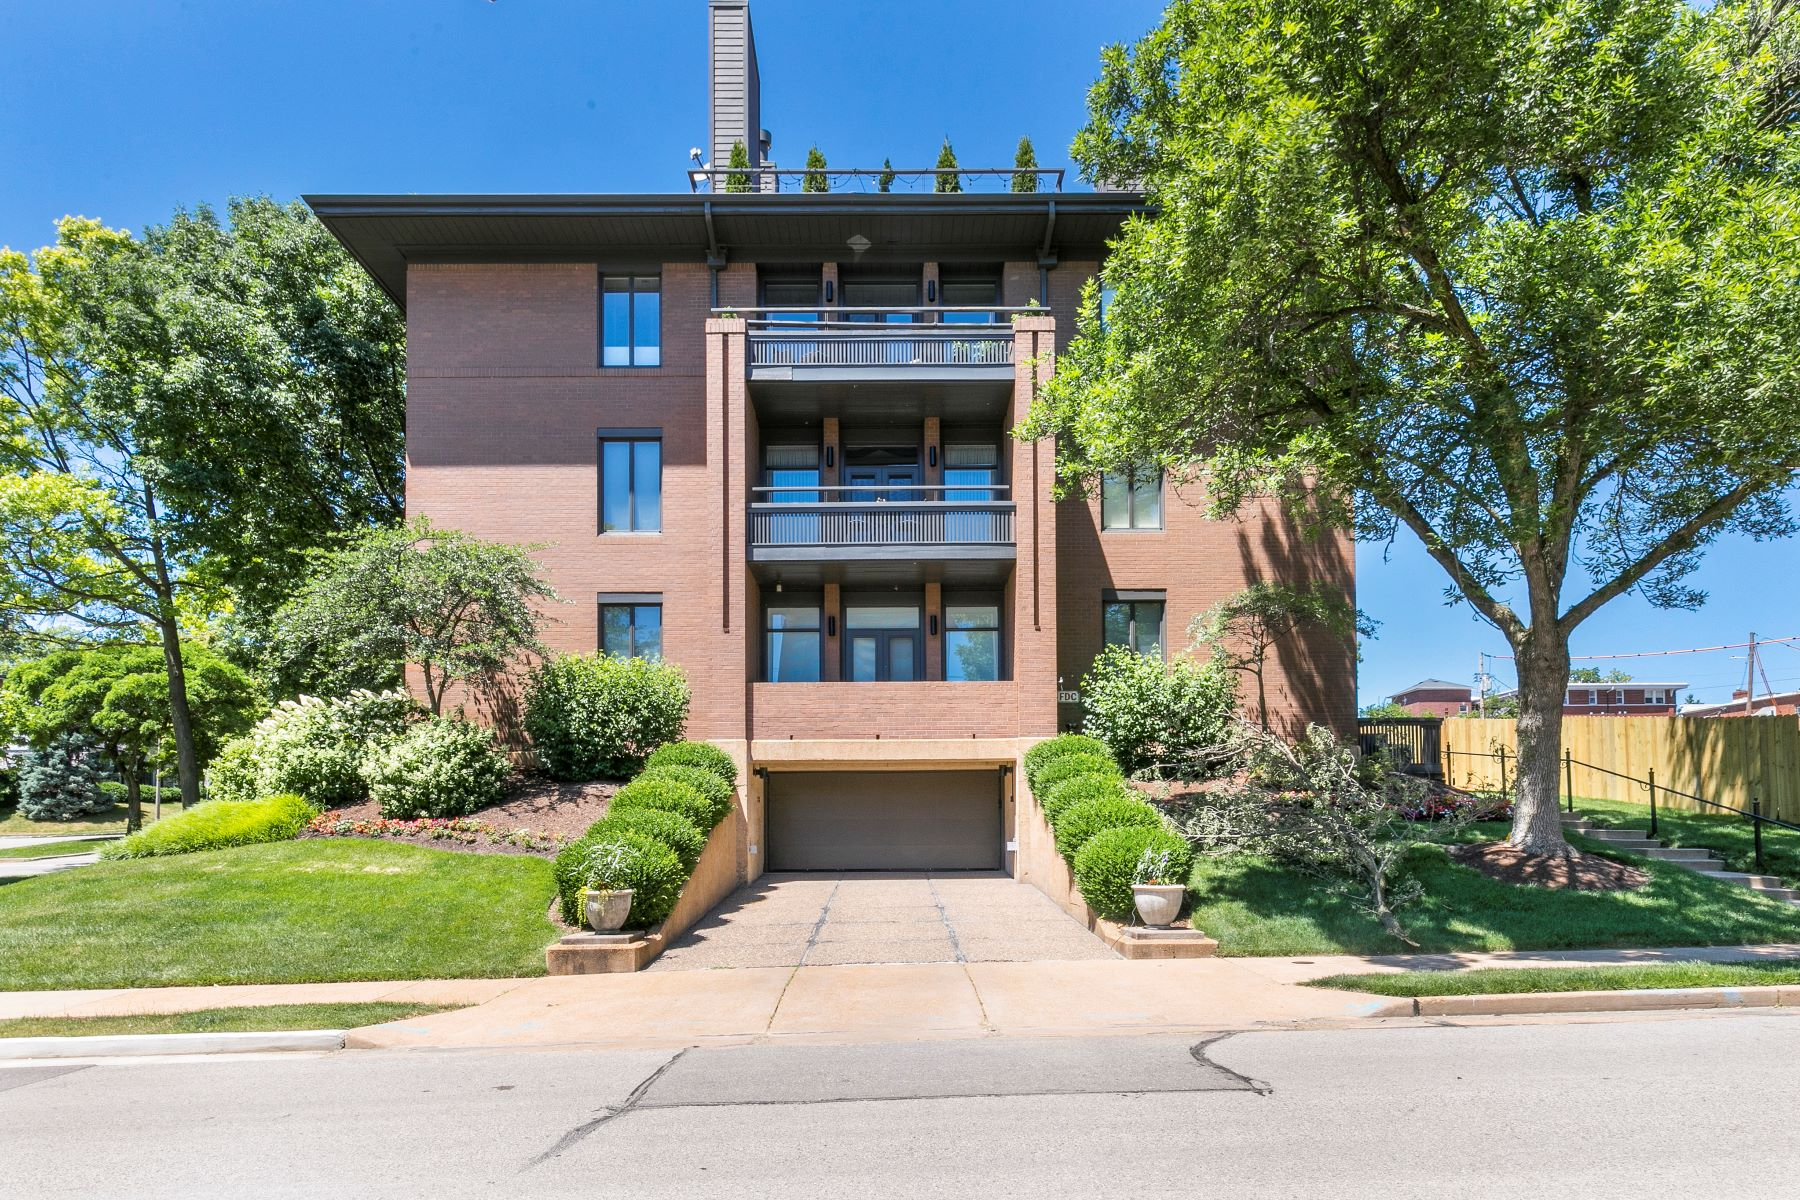 Property for Sale at Breathtaking Clayton Condo 202 North Brentwood Boulevard #1C Clayton, Missouri 63105 United States